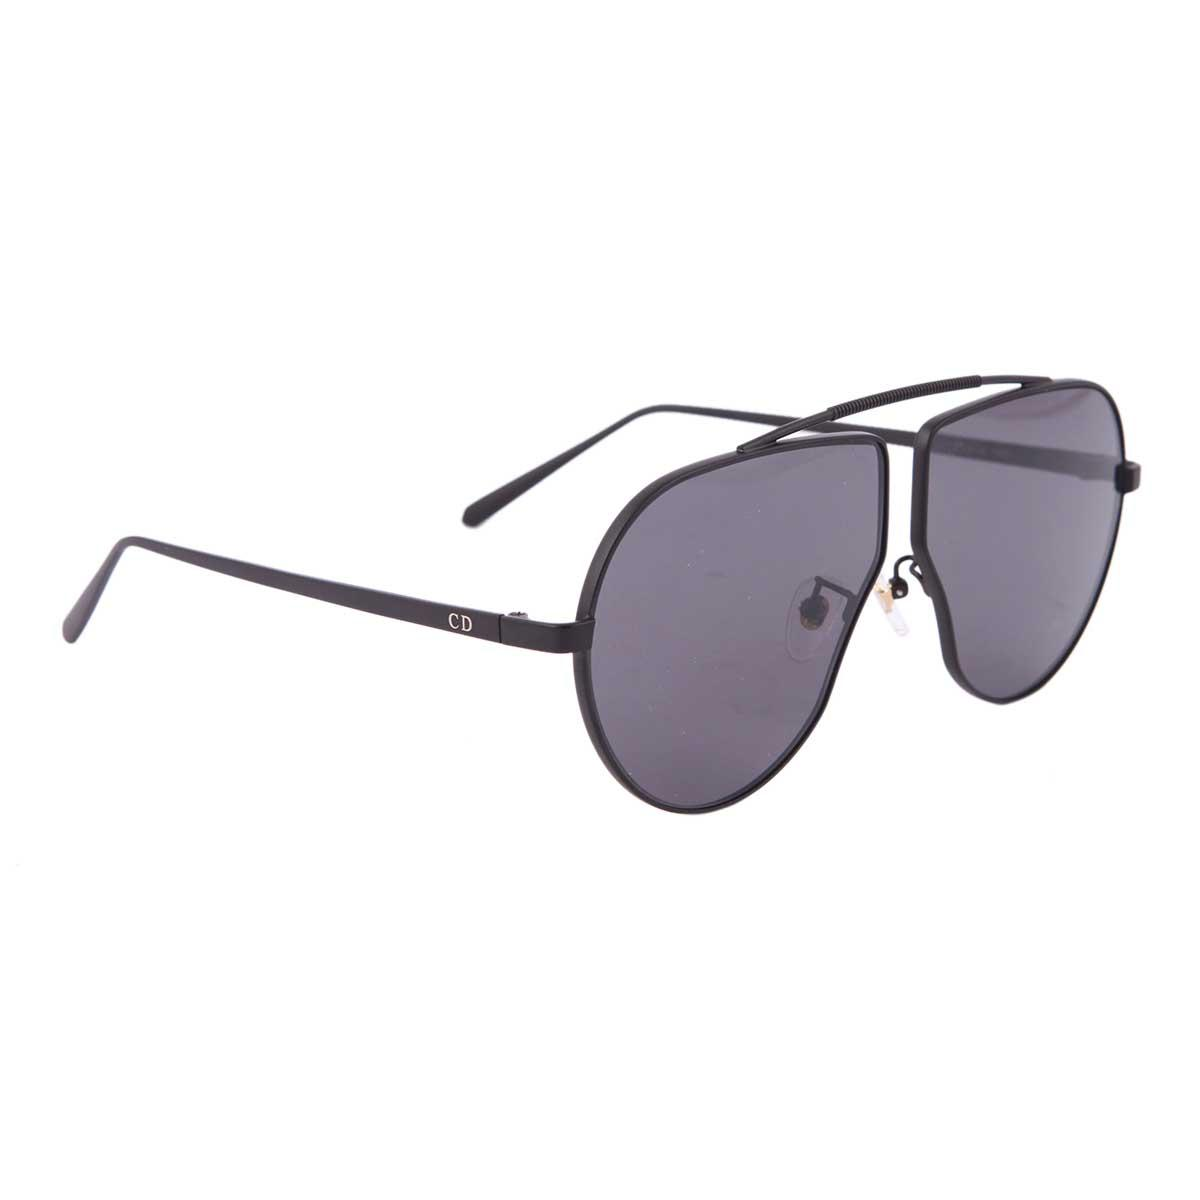 c98a9d8a31ac Dior SUNGLASS for men: Buy Online at Best Prices in Bangladesh ...